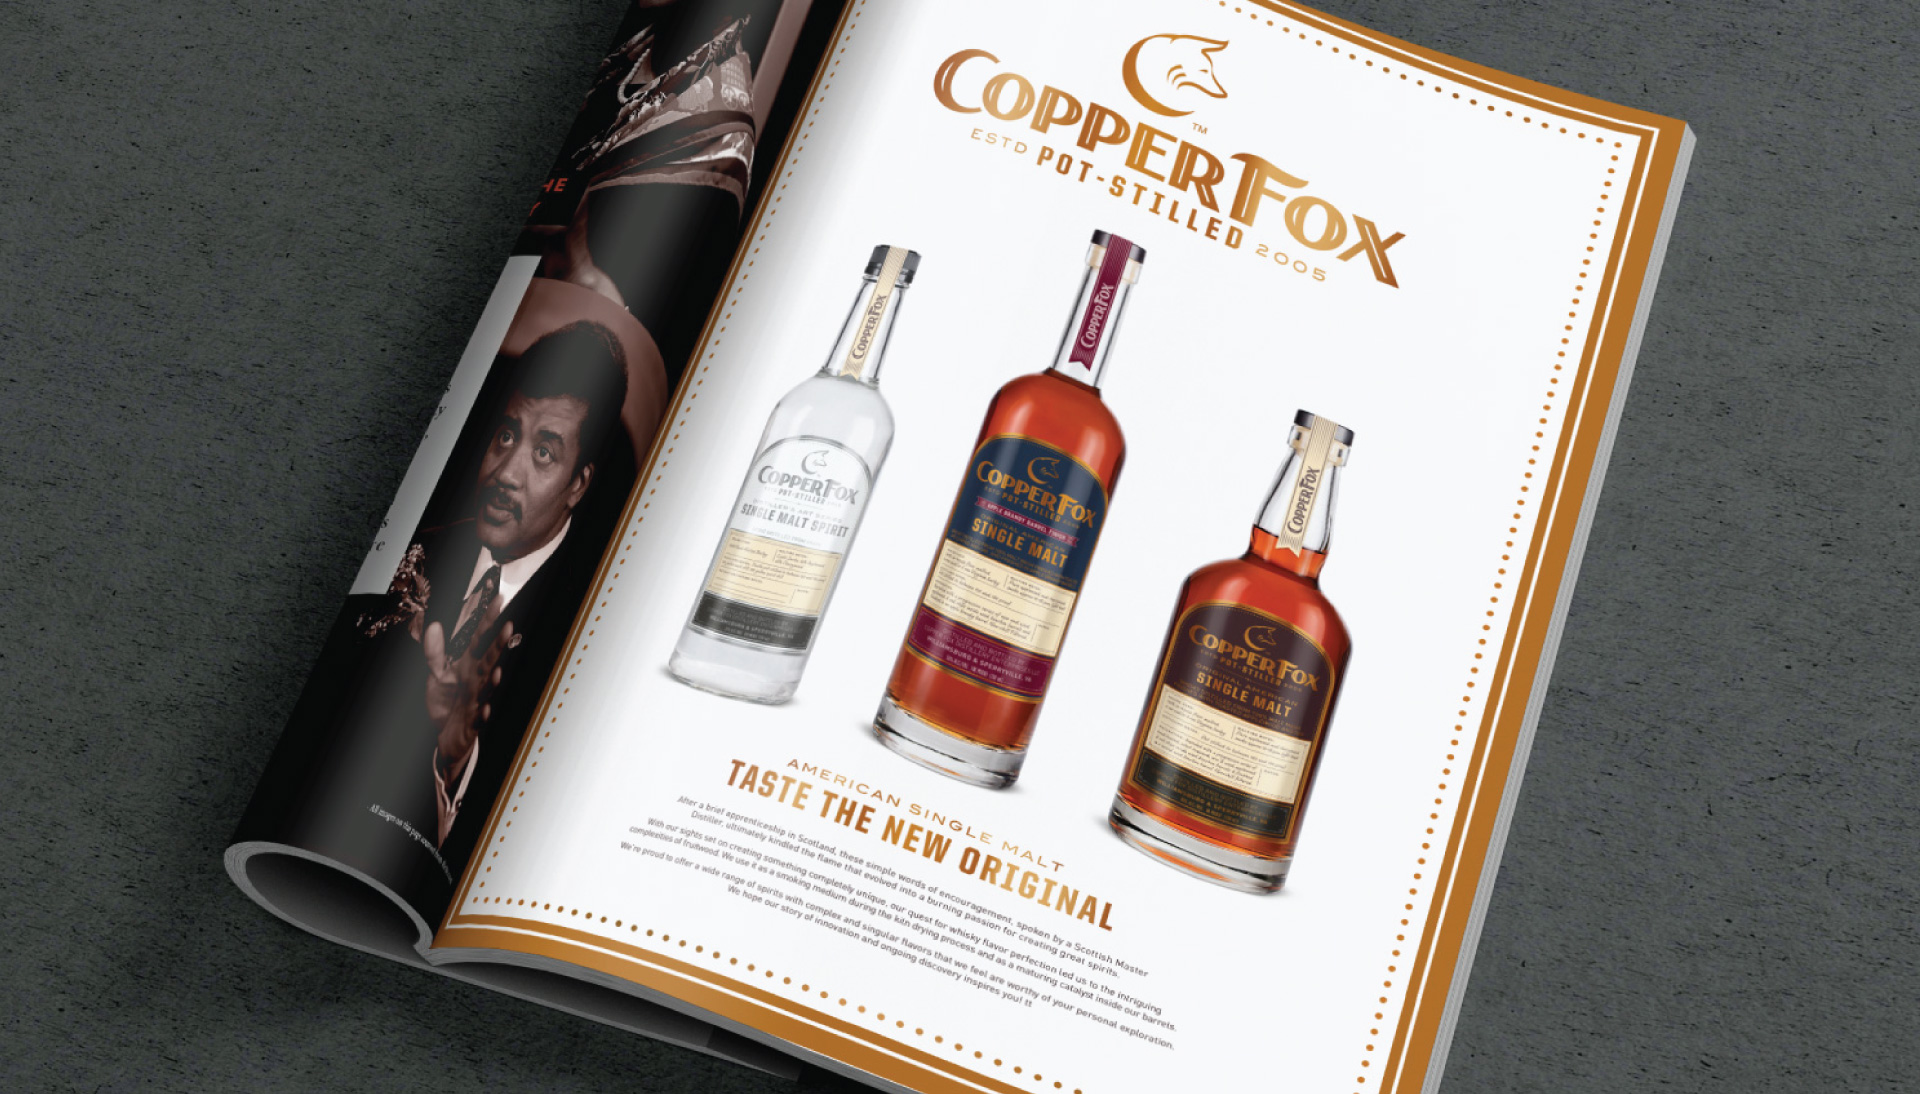 Copper Fox - Marketing Collateral